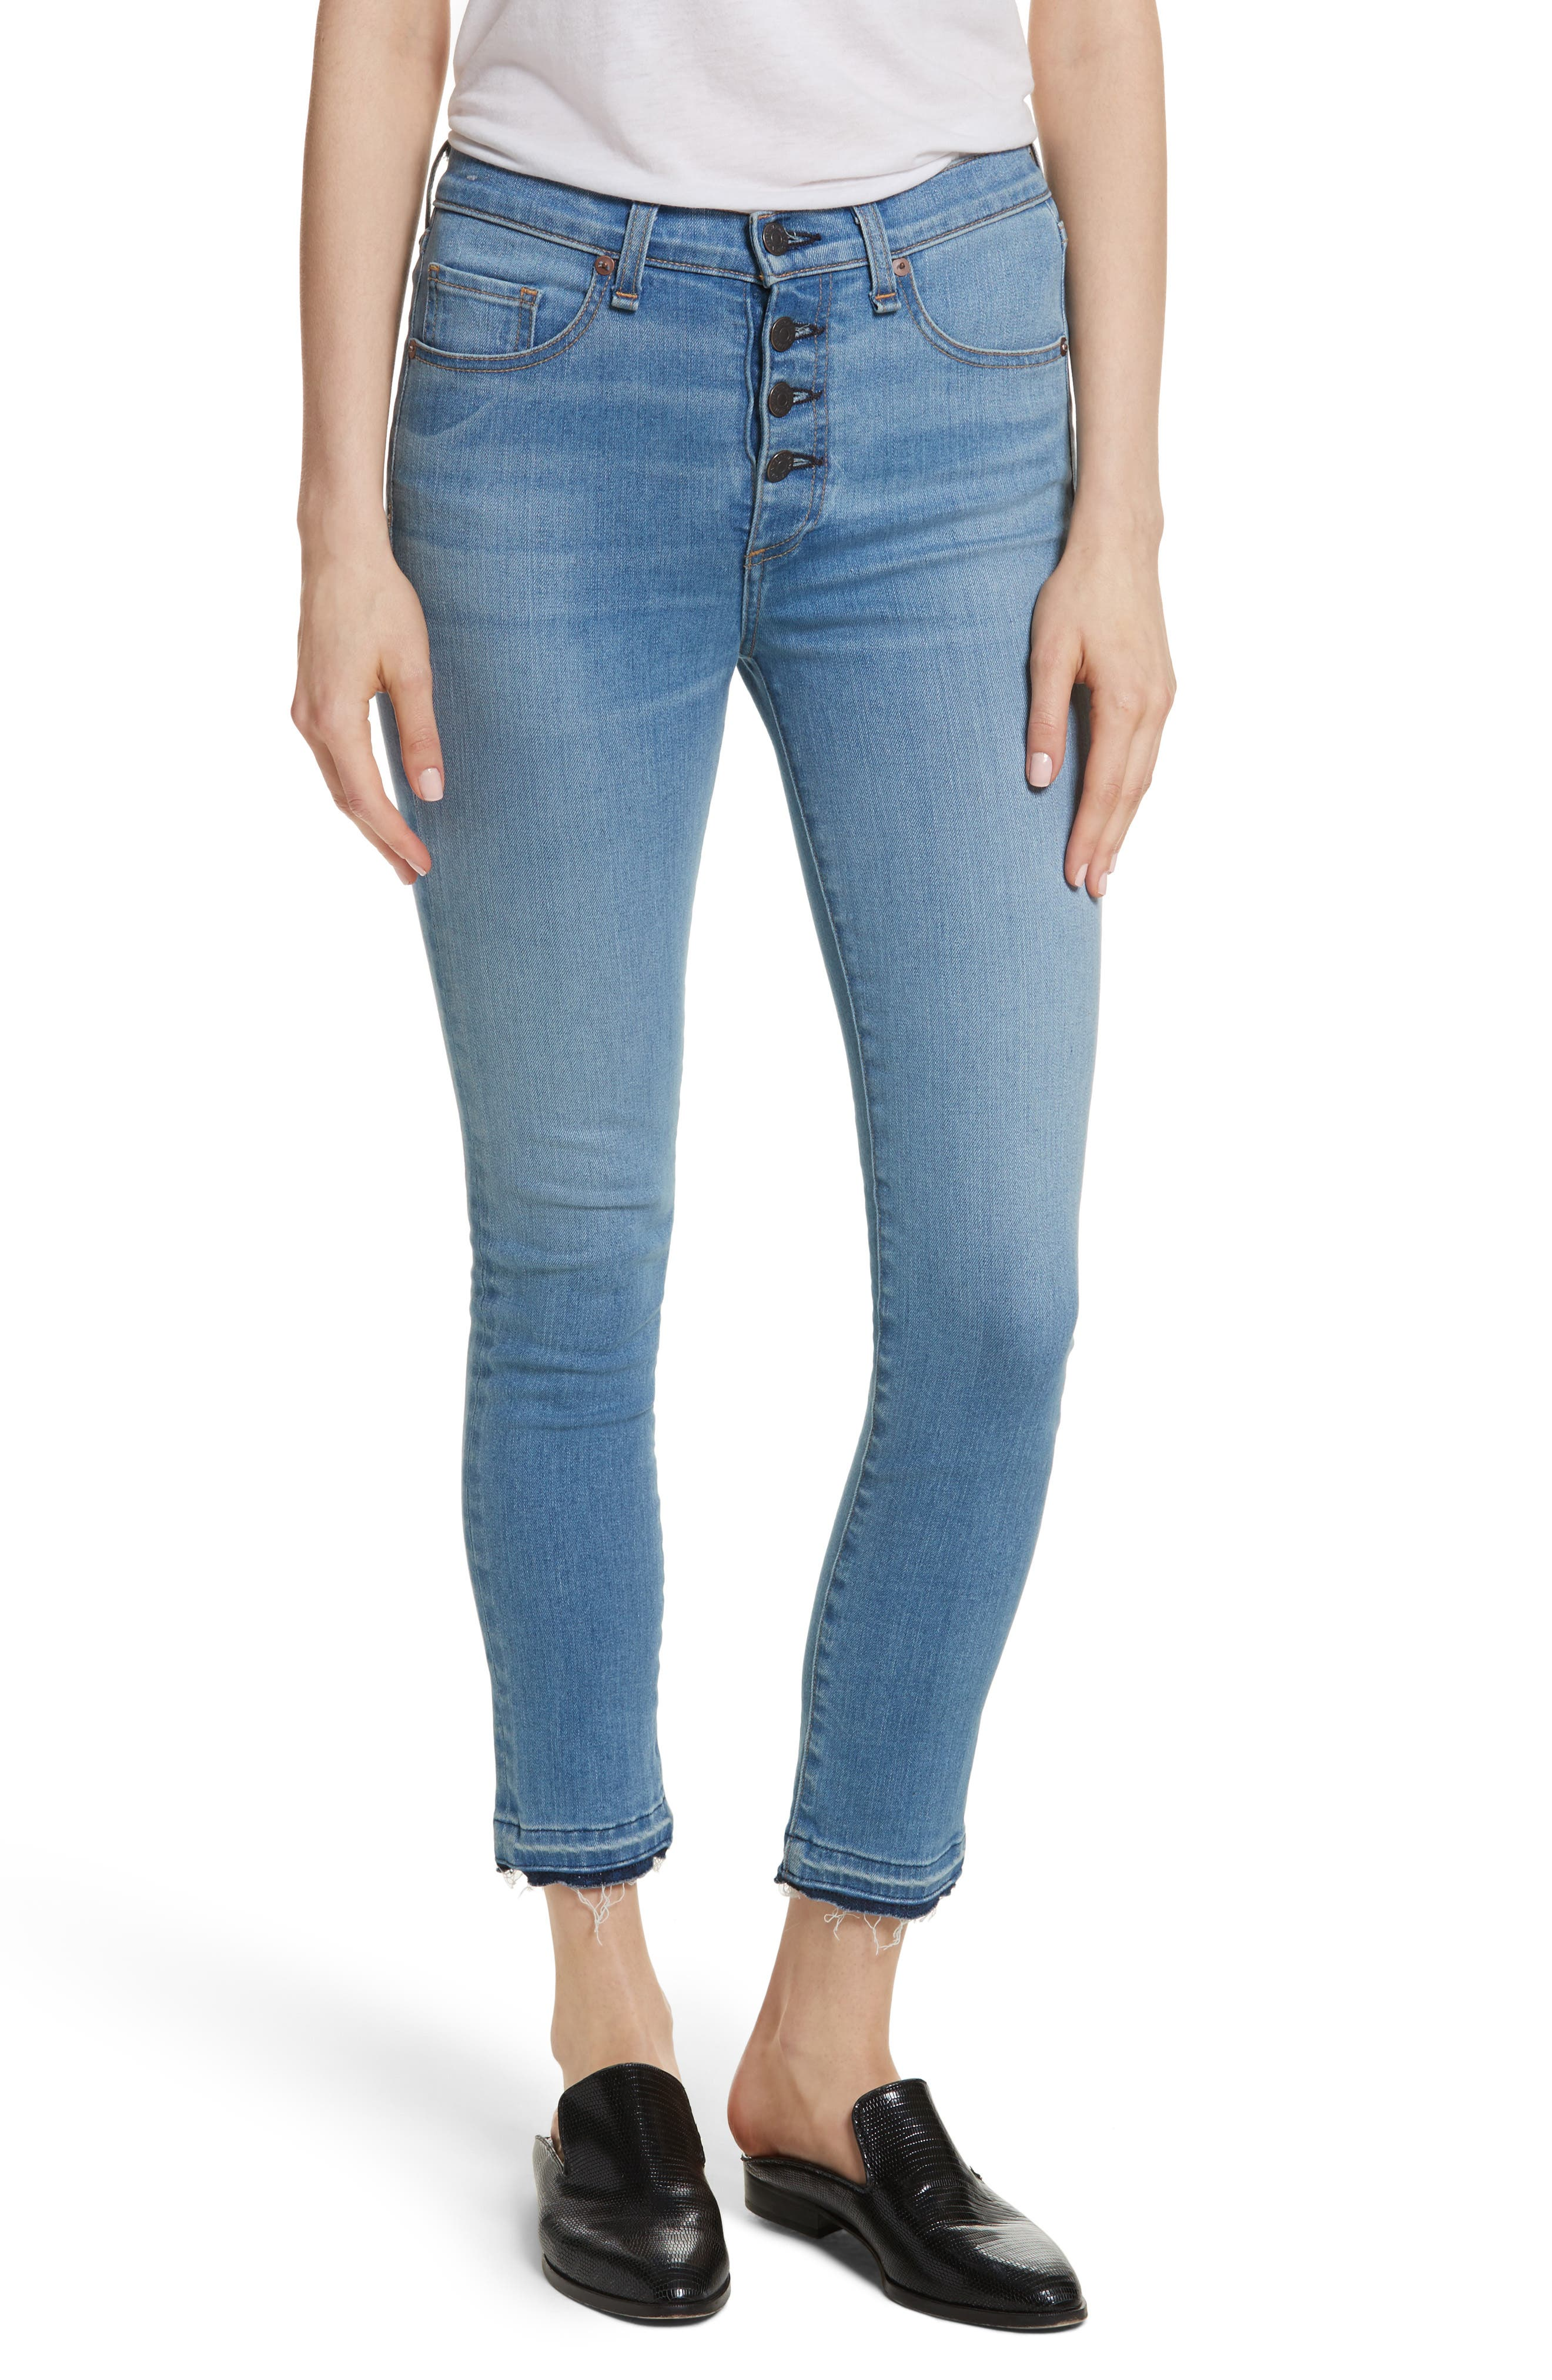 Veronica Beard Debbie High Waist Fray Hem Jeans